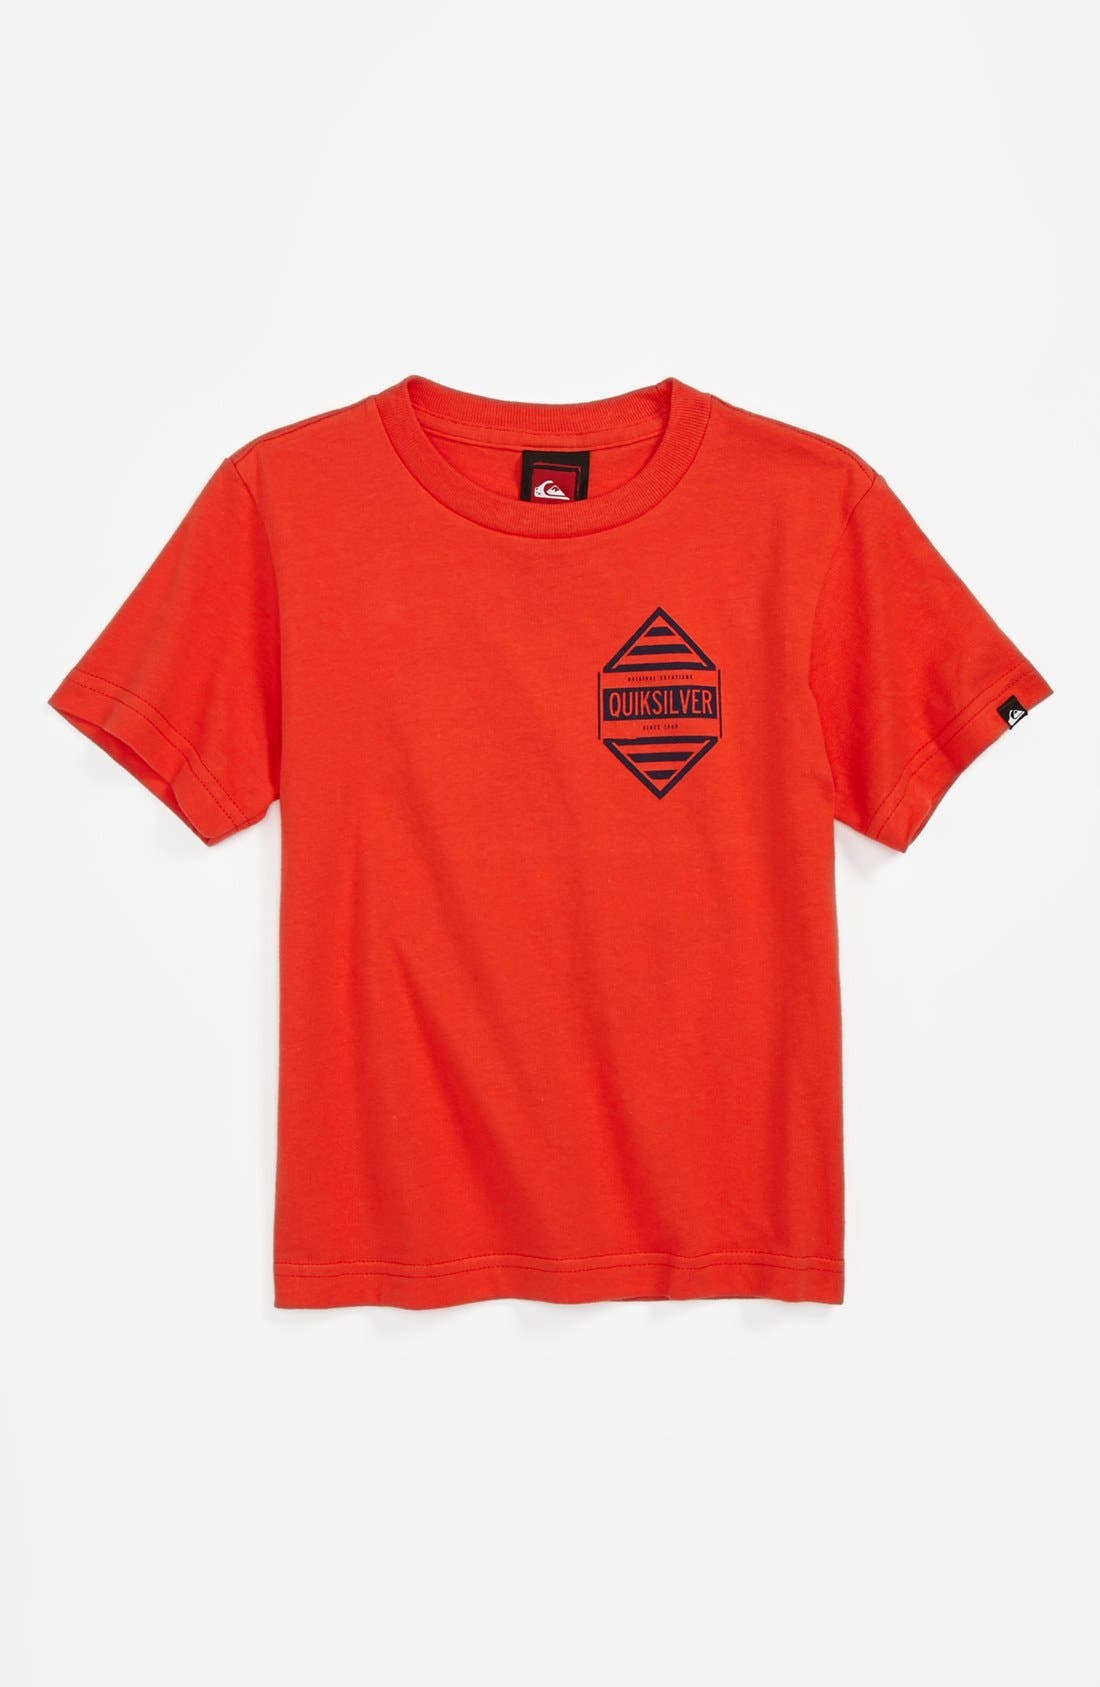 Alternate Image 1 Selected - Quiksilver 'Answer' T-Shirt (Toddler Boys)